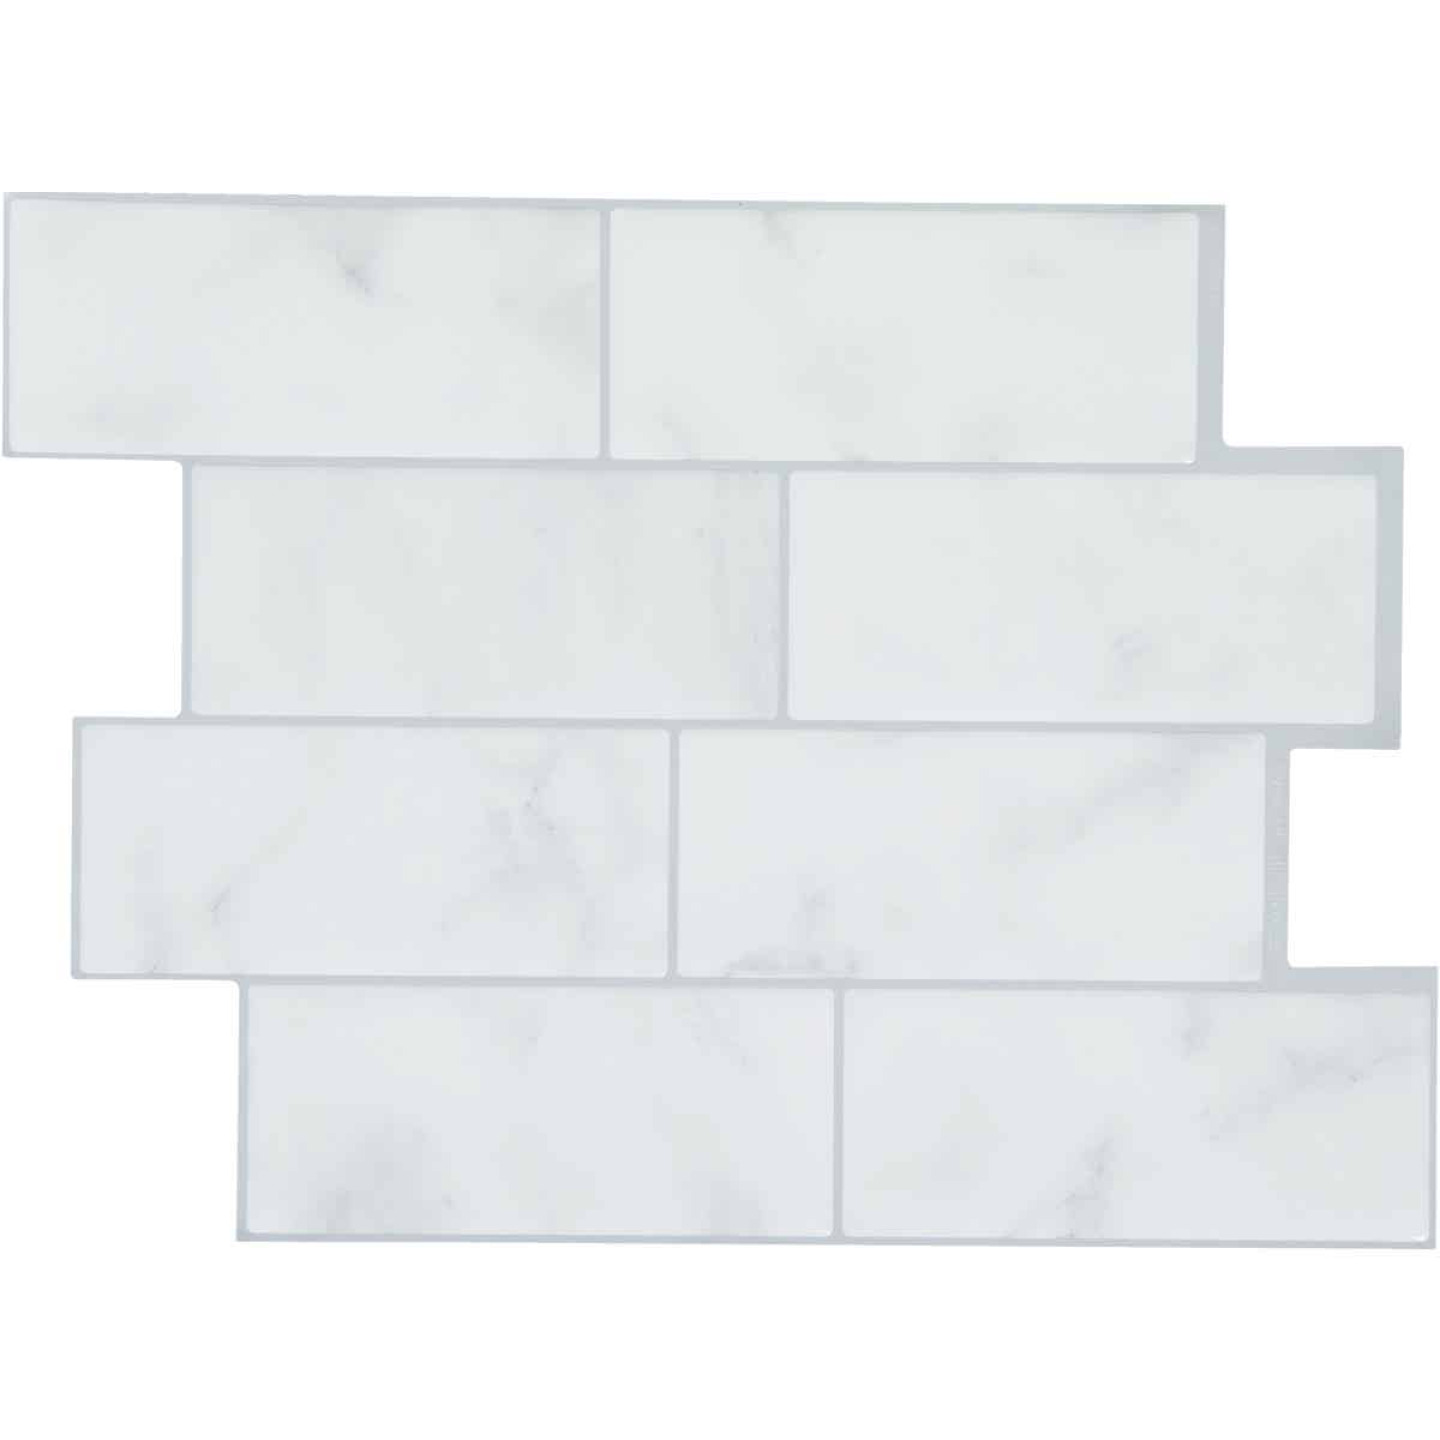 Smart Tiles Approx. 9 In. x 11 In. Glass-Like Vinyl Backsplash Peel & Stick, Metro Carrera Subway Tile (6-Pack) Image 1